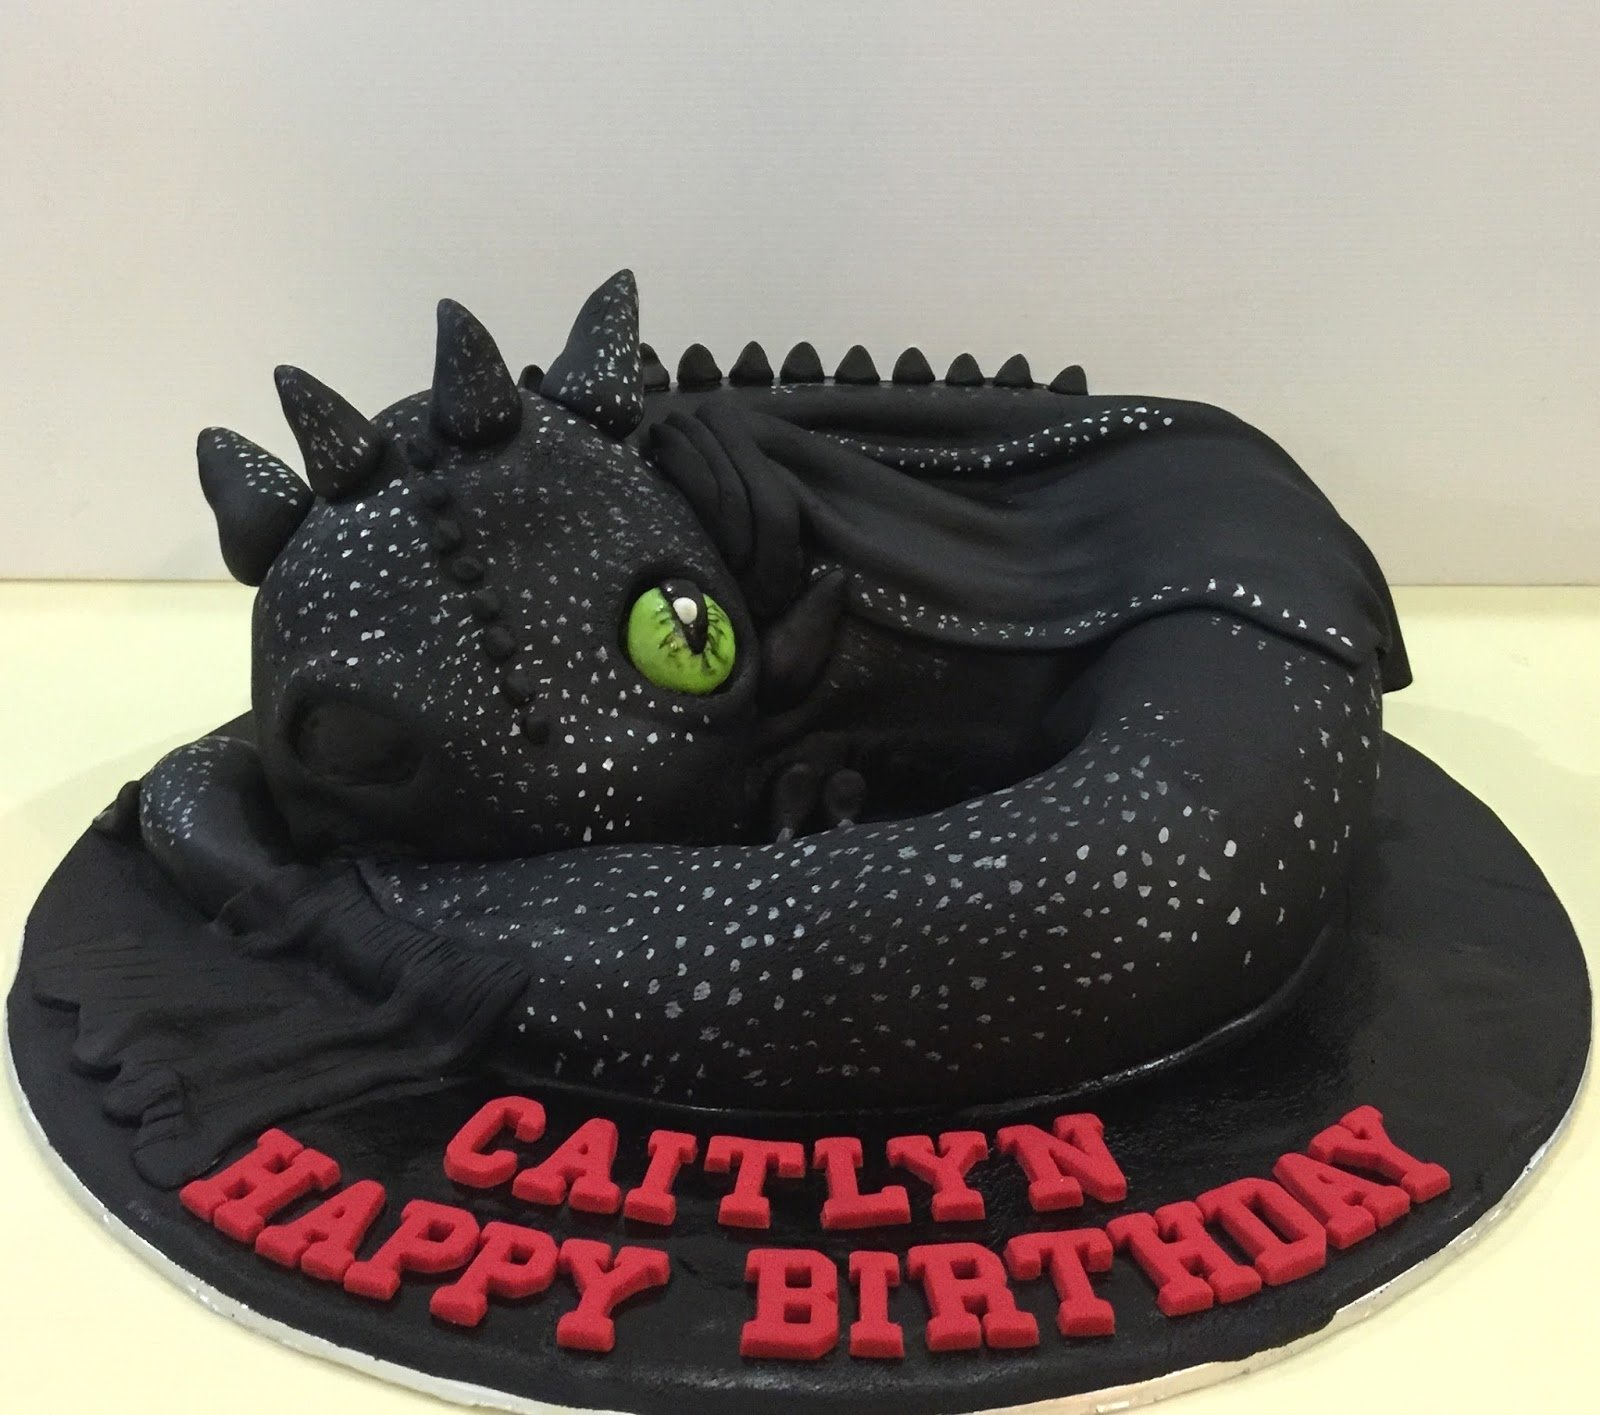 10 Most Recommended How To Train Your Dragon Cake Ideas cupcake divinity how to train your dragon toothless cake 2020